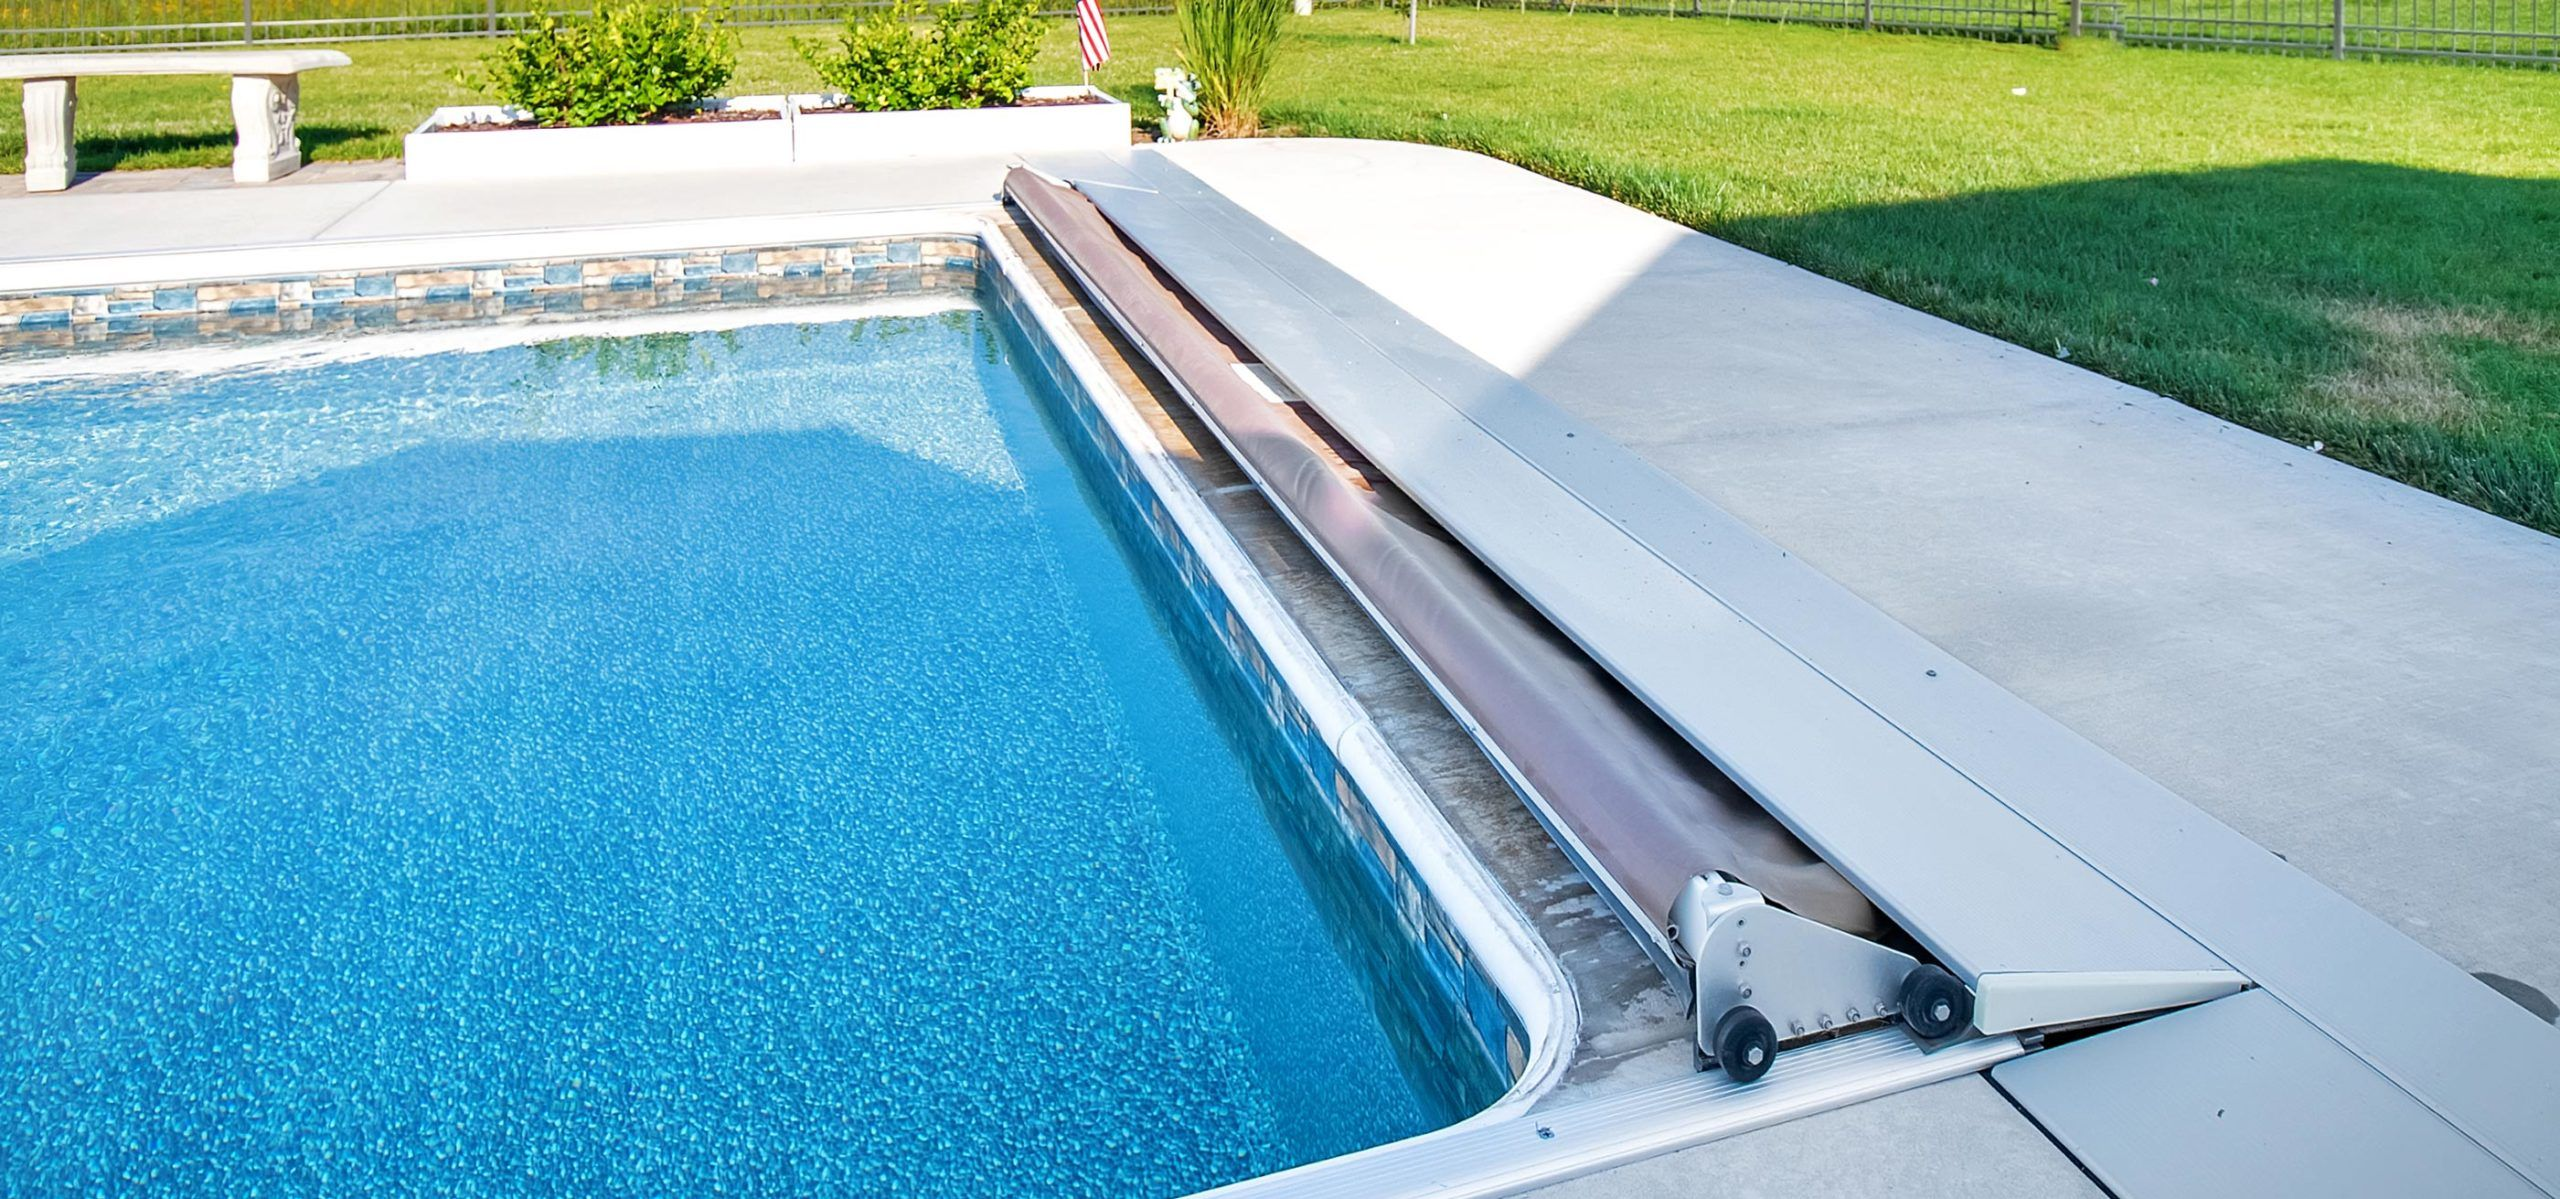 Automatic Pool Covers in 2020 Automatic pool cover, Pool